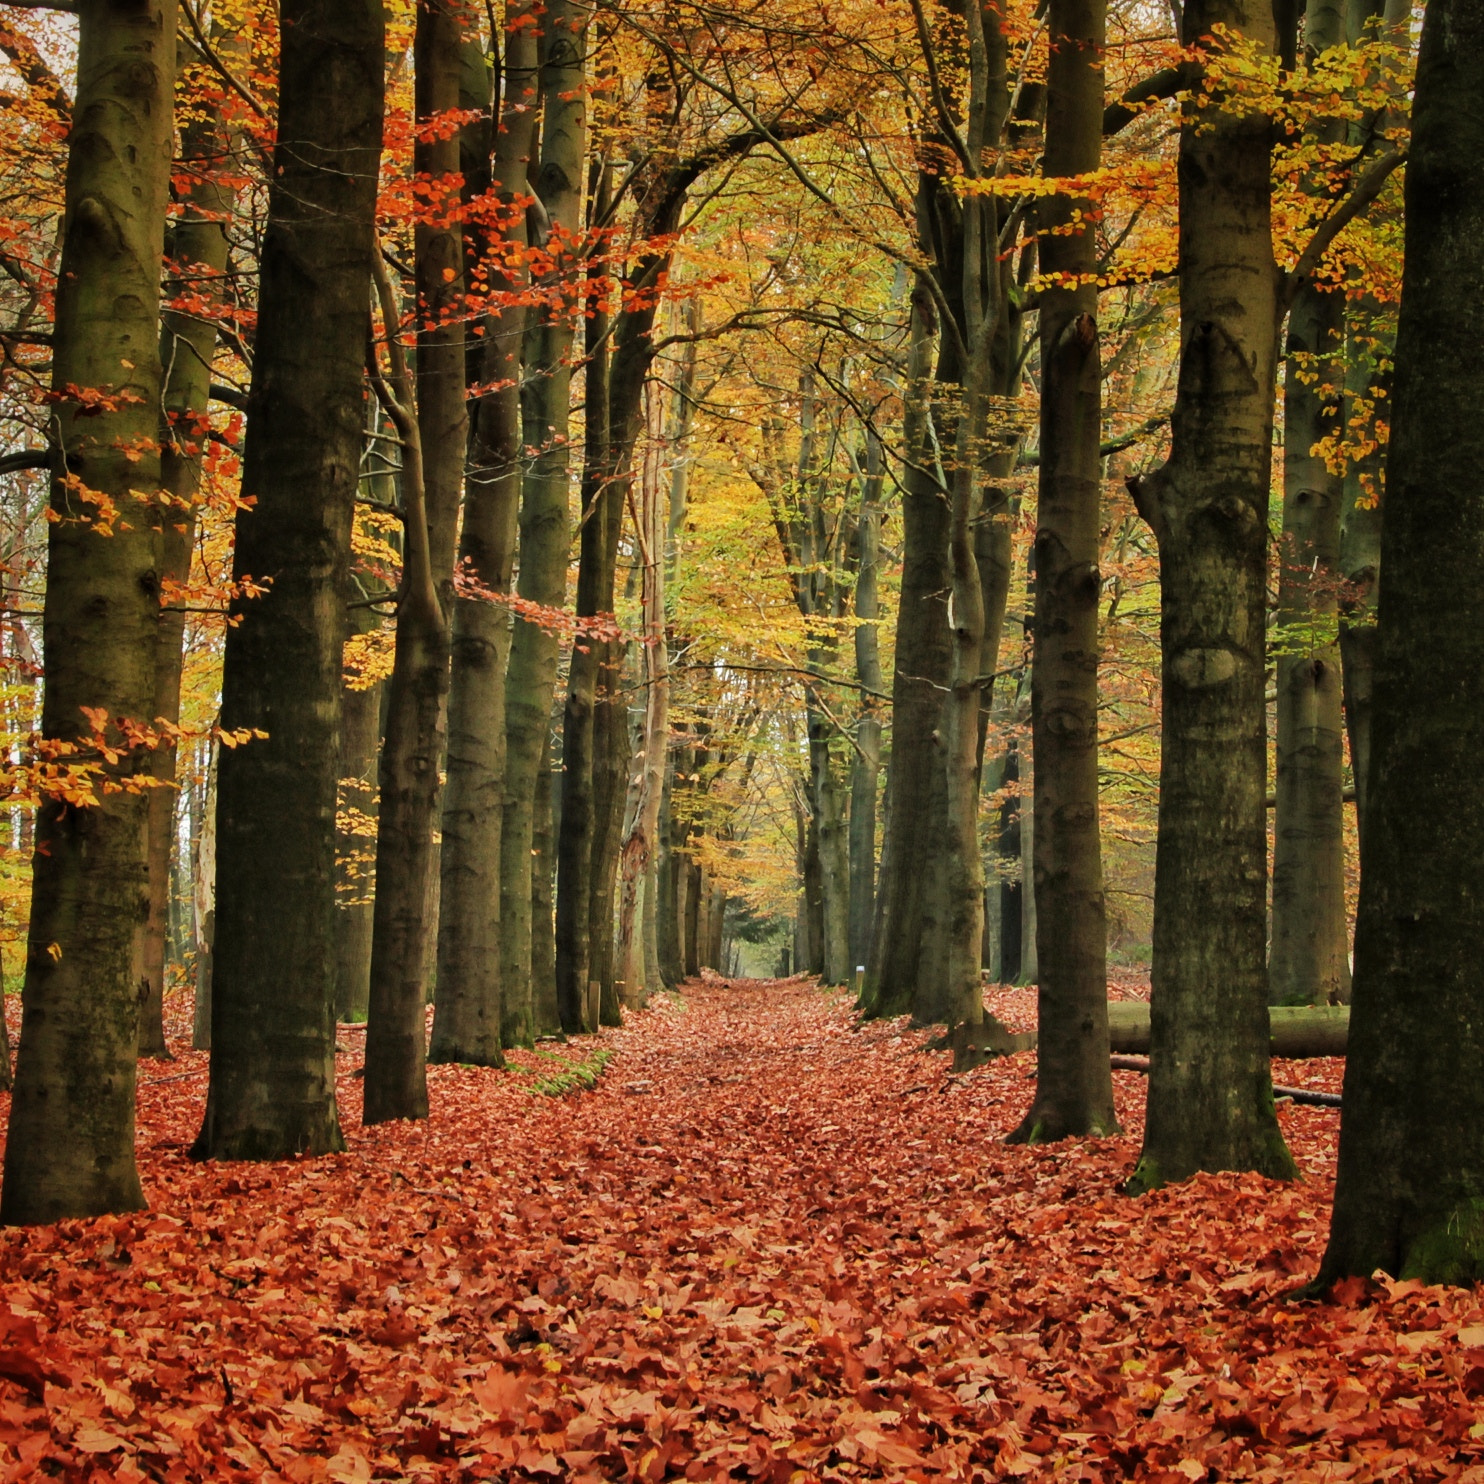 Photograph Forrest path by Joost Lagerweij on 500px